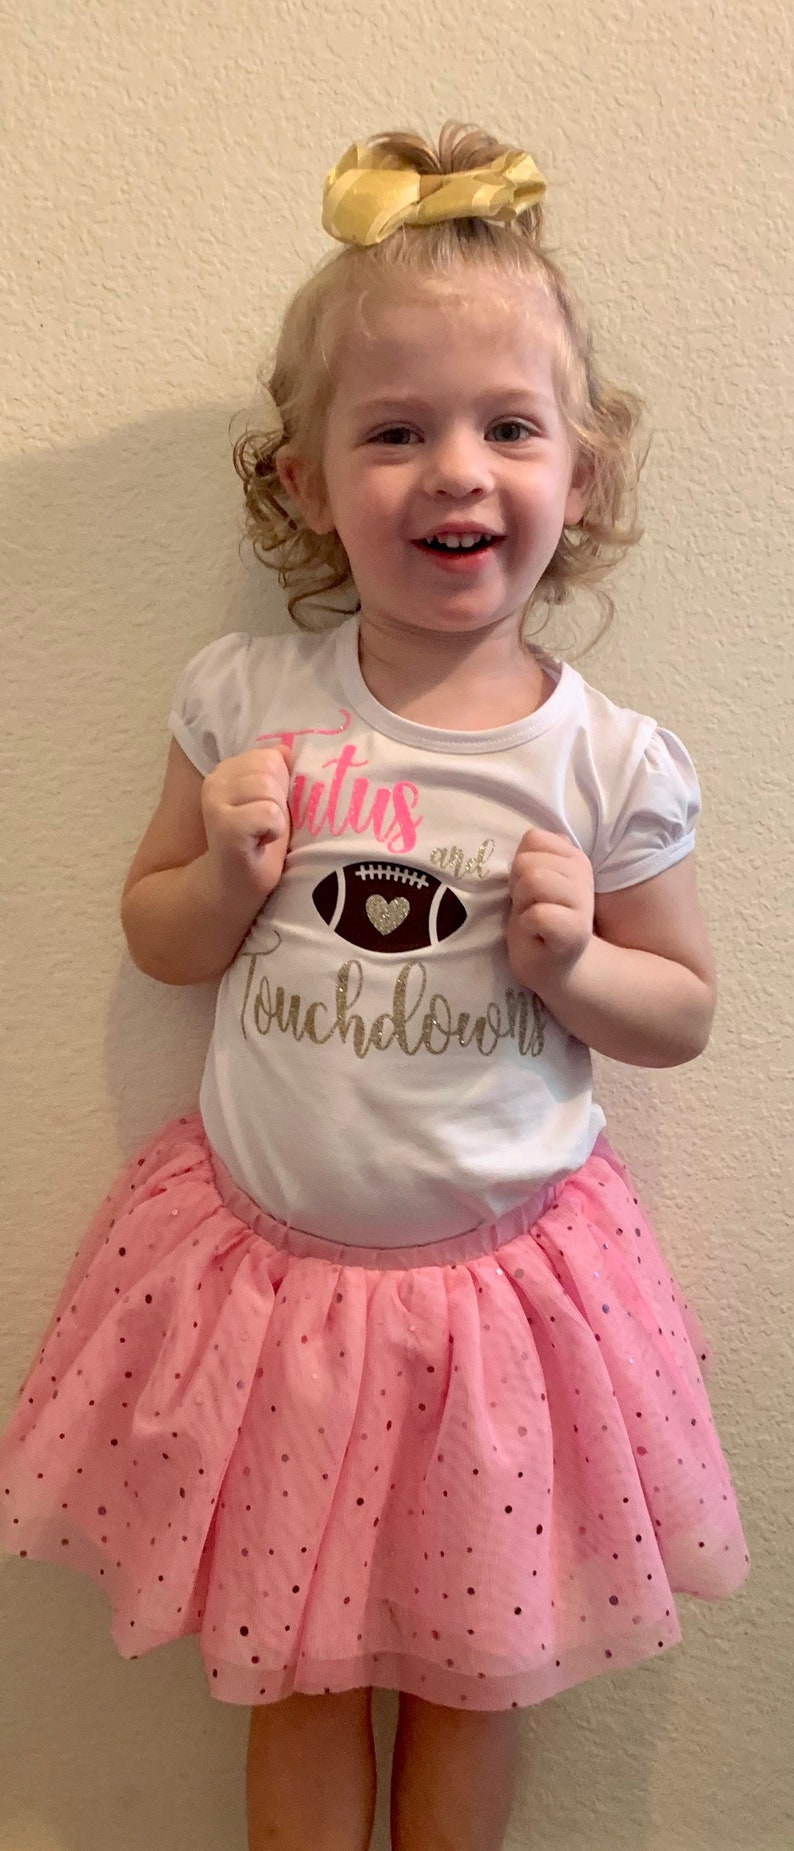 Tutus and Touchdowns toddler tshirt